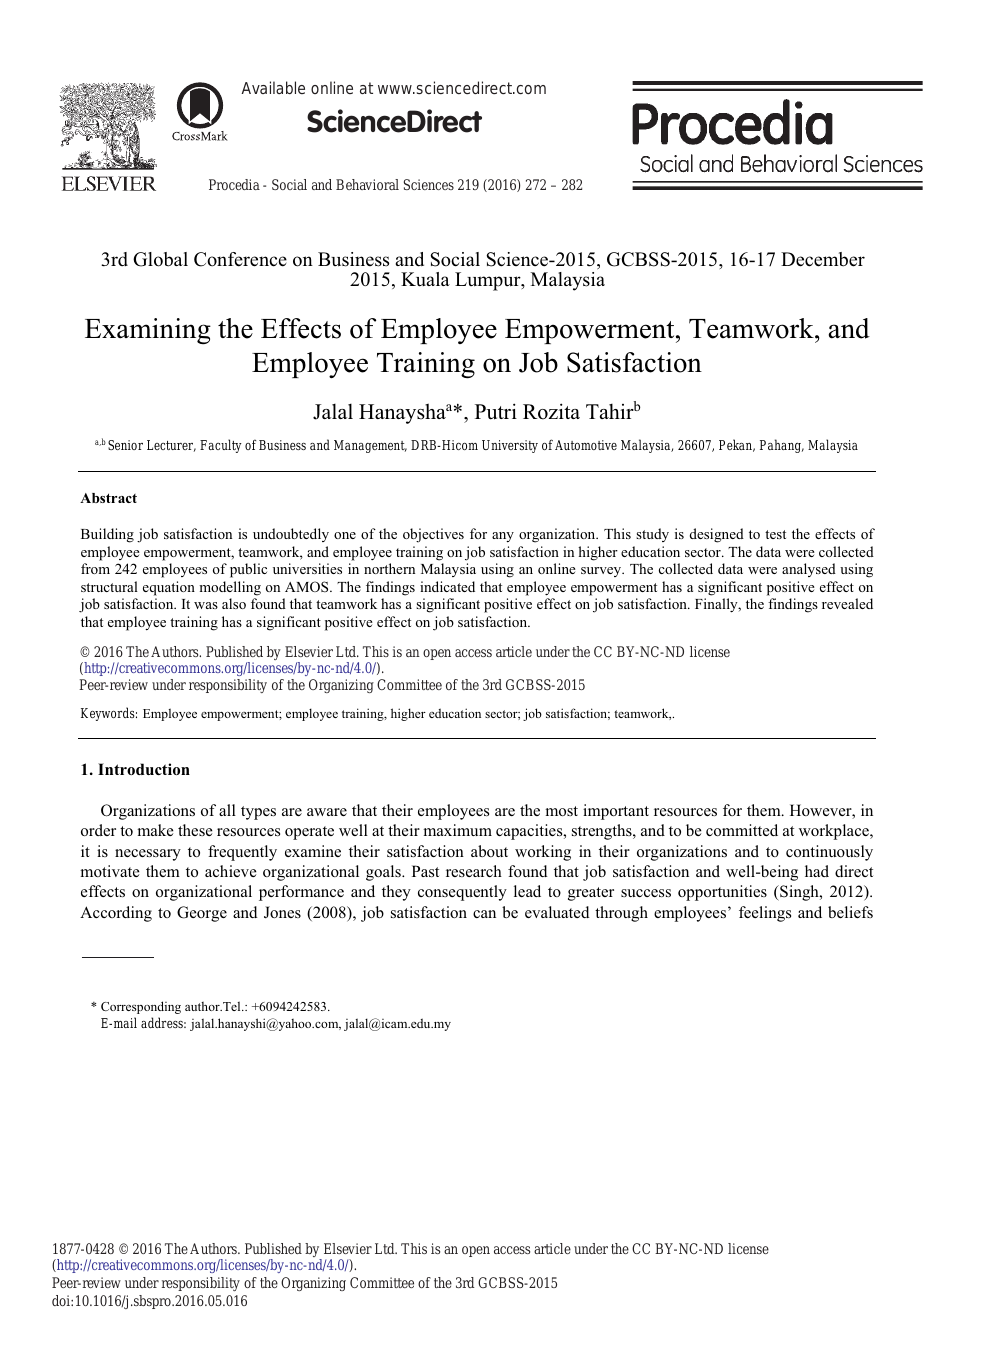 005 Abstract For Research Paper On Job Satisfaction Awesome Full